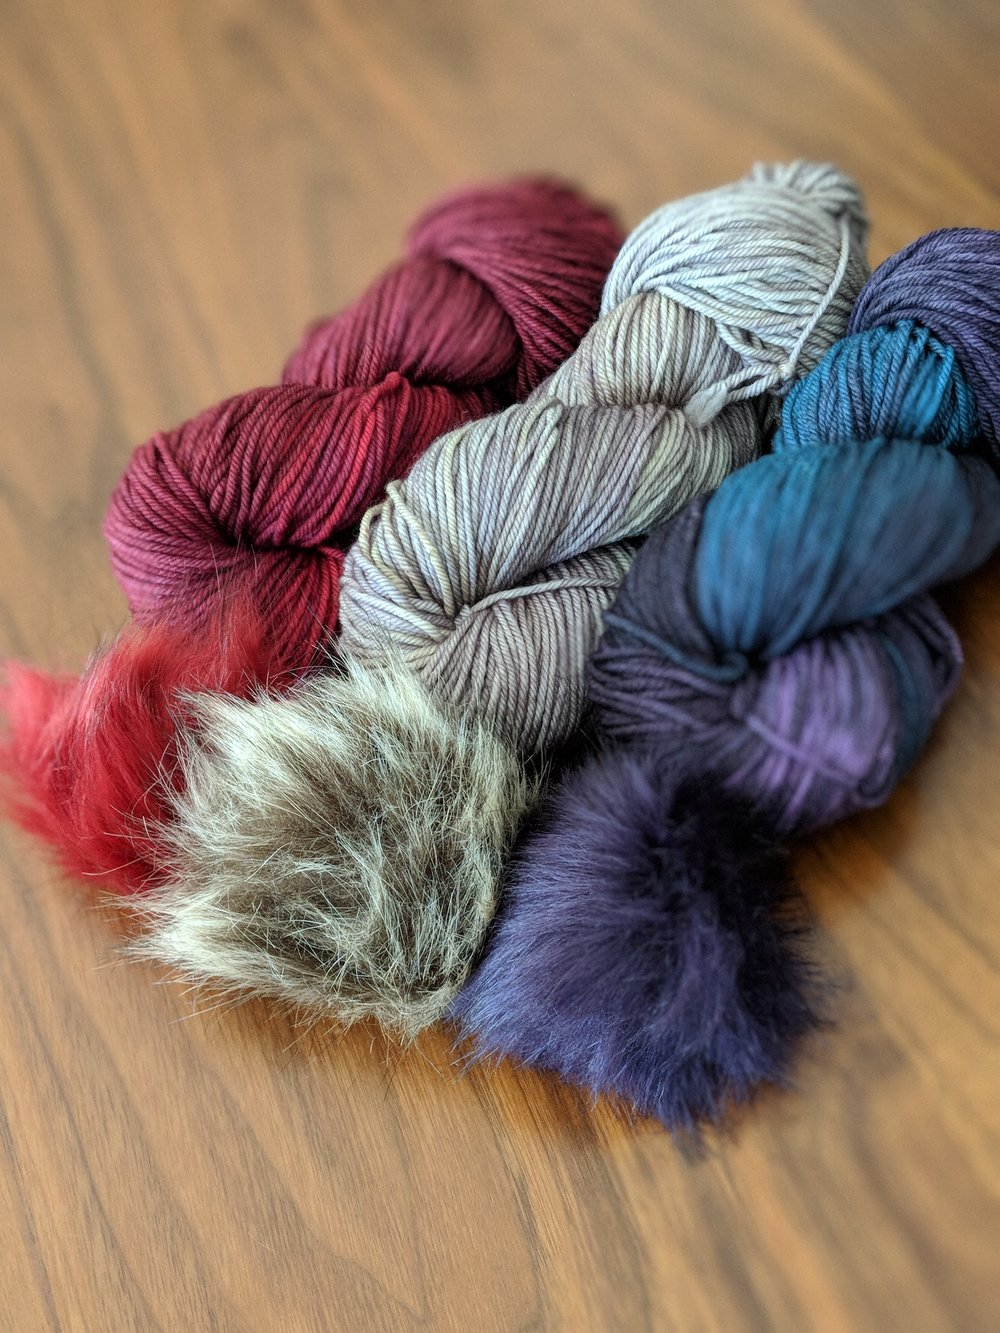 This is an order I mailed earlier this week. Someone is ready for hat weather and I am inspired! May have to cast on for a hat myself this weekend. Pictured yarn/pompom combos are Garnet/burgundy, Stone/brown, Fig/deep purple.